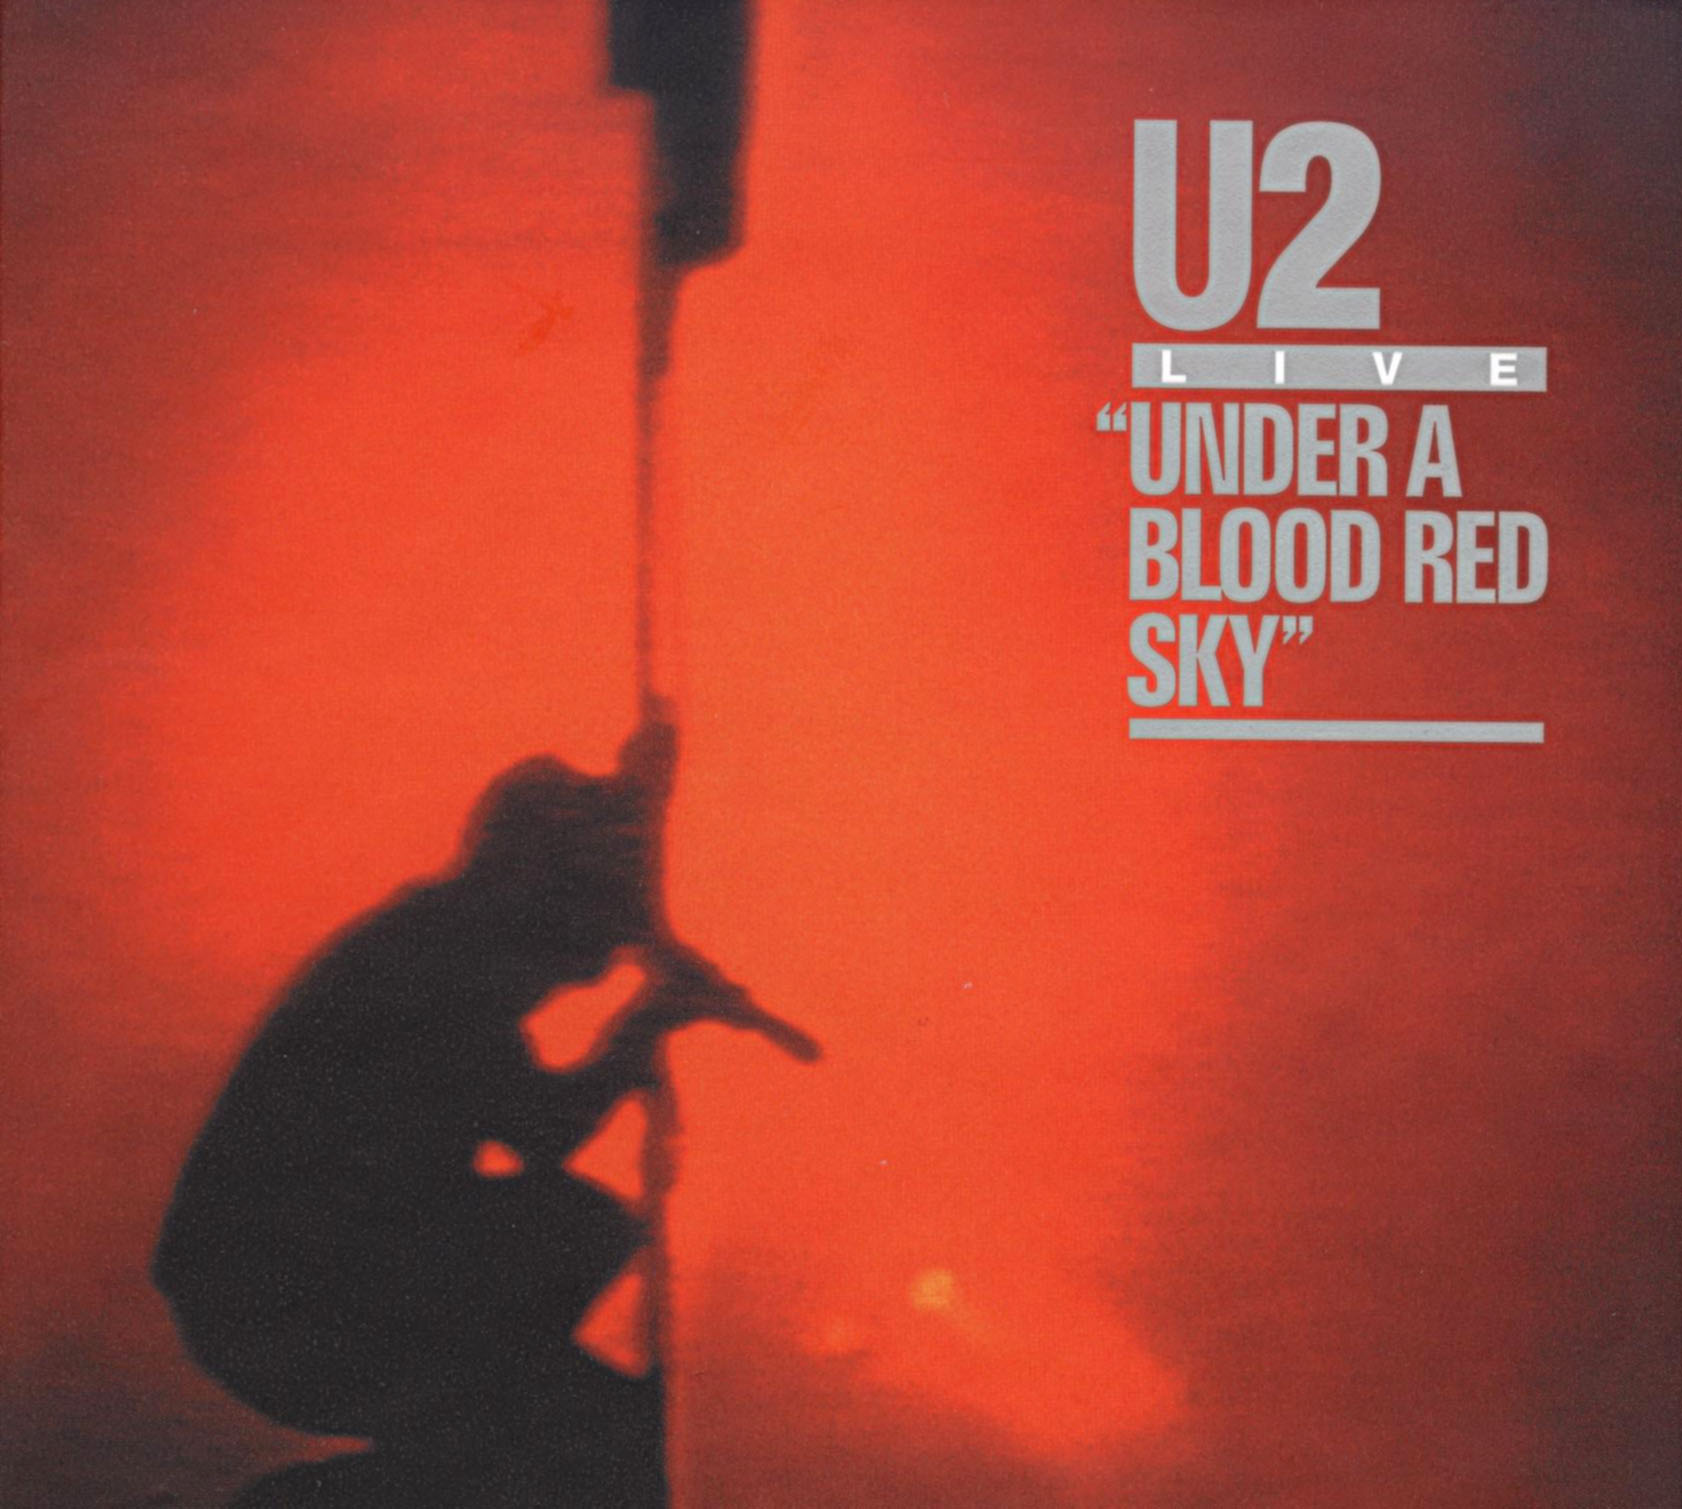 U2: Live at Red Rocks - Under a Blood Red Sky